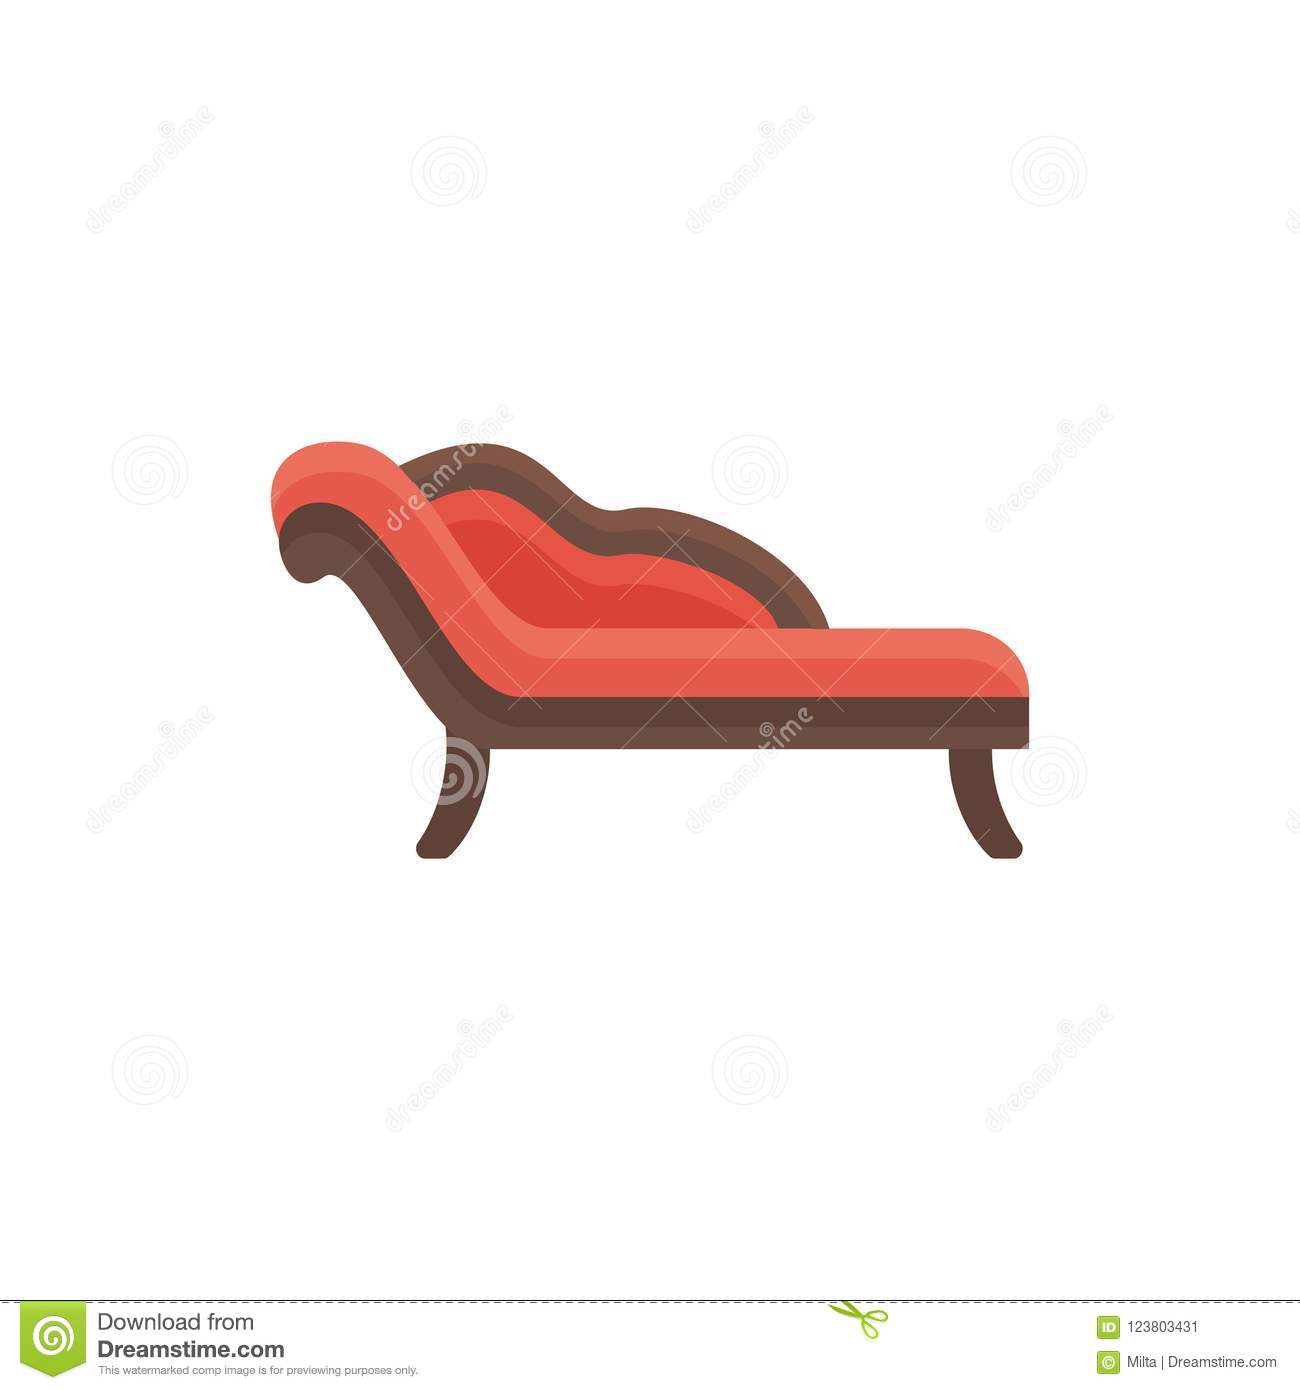 Chaiselongue Modern Red Chaise Lounge Sofa Vector Illustration Flat Icon Of Settee